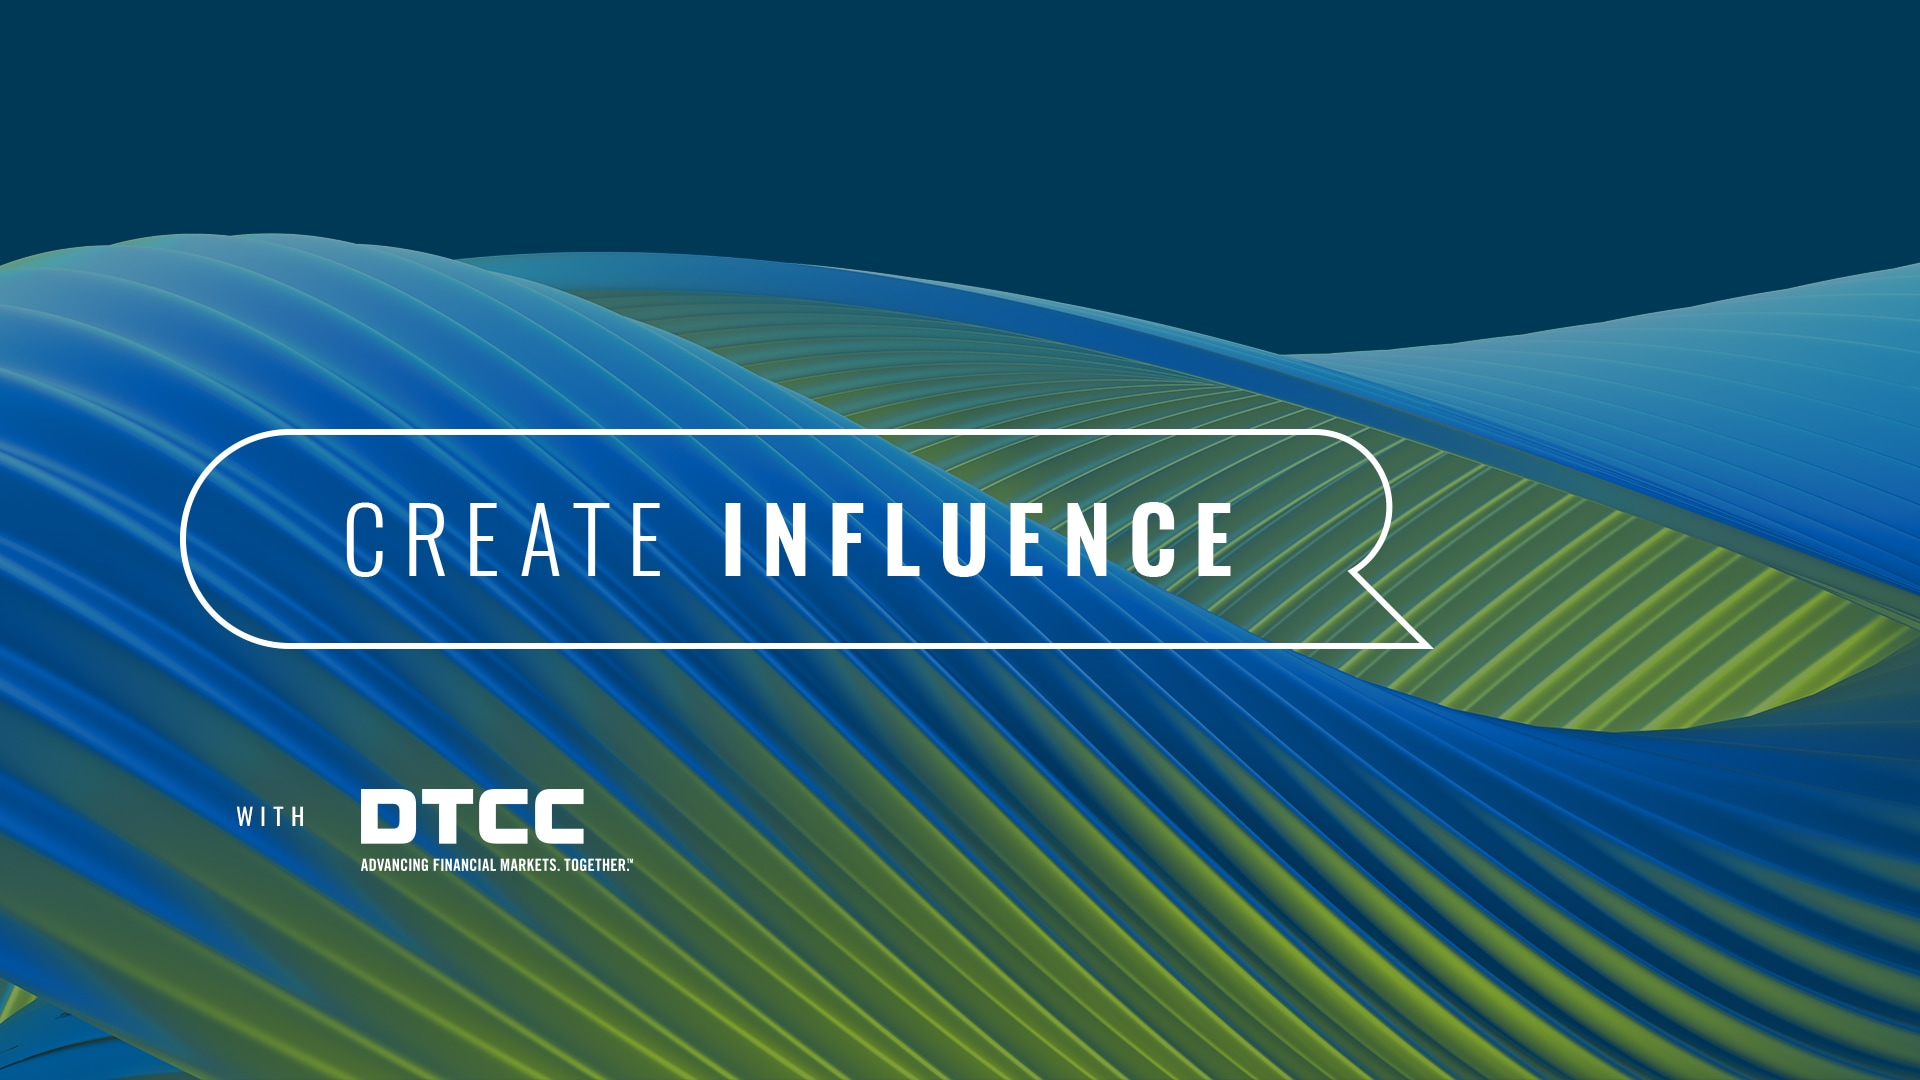 Create Influence with DTCC